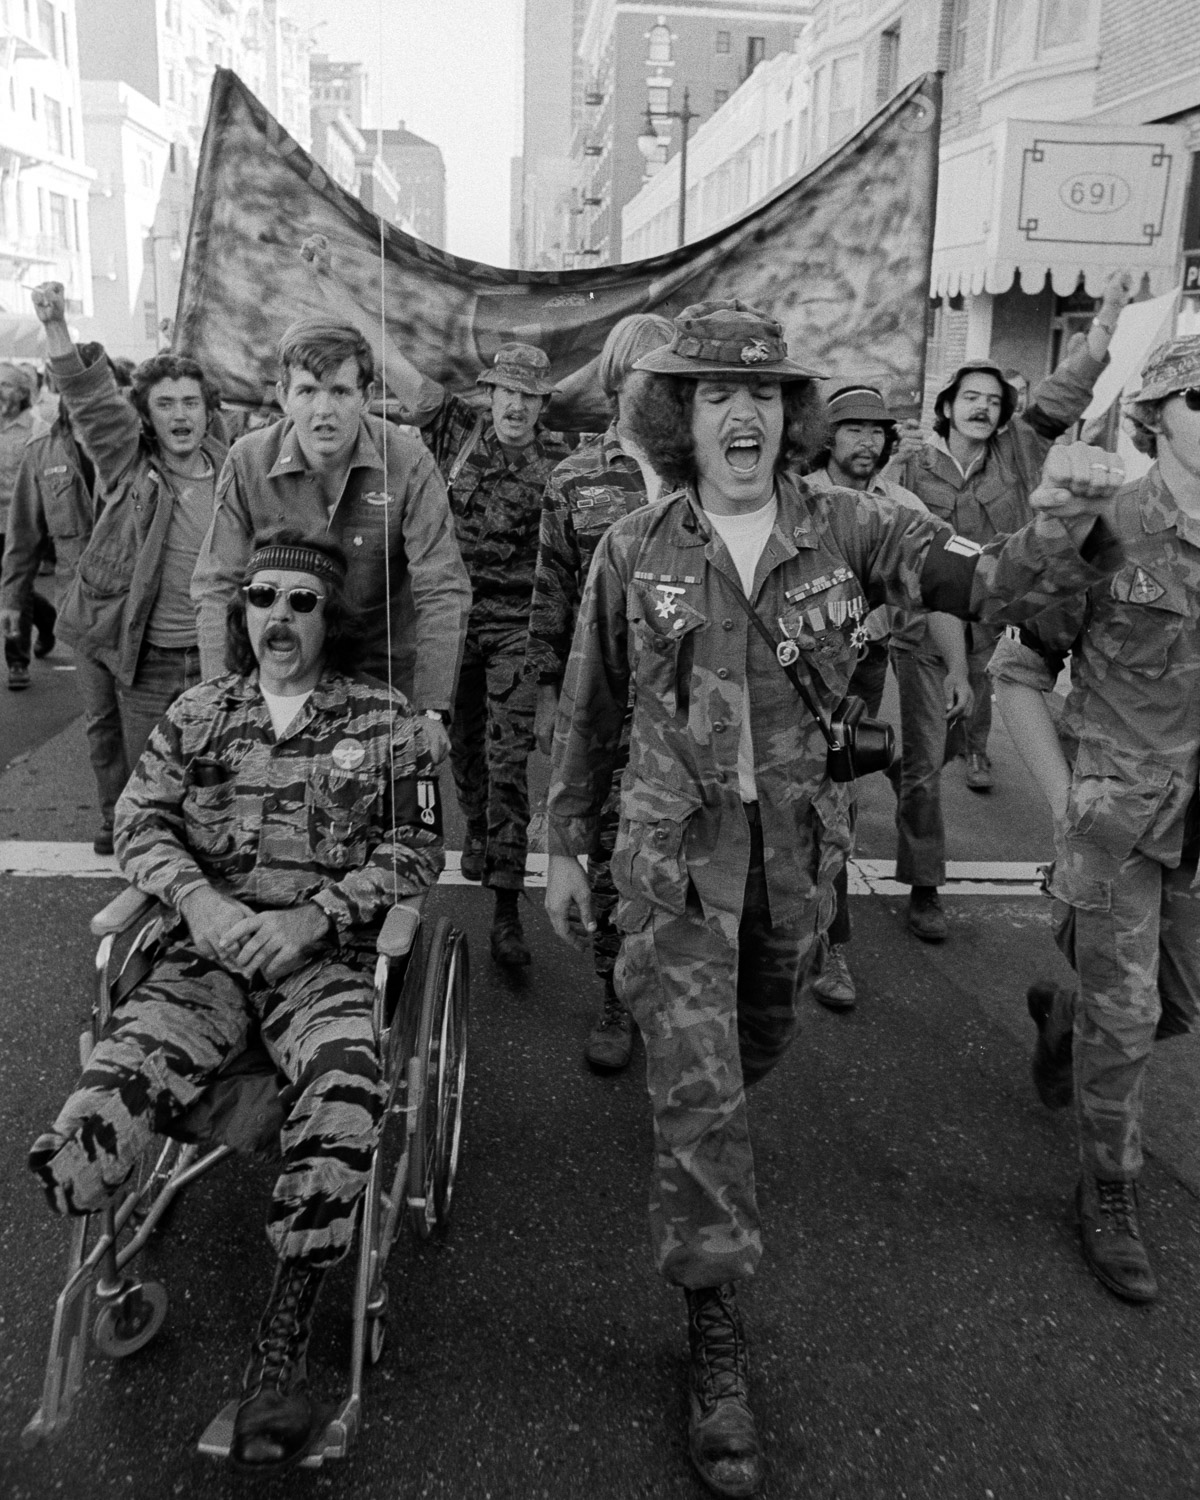 A contingent of veterans joins the march in support of the USS Coral Sea sailors movement to stop their ship from sailing to Vietnam.